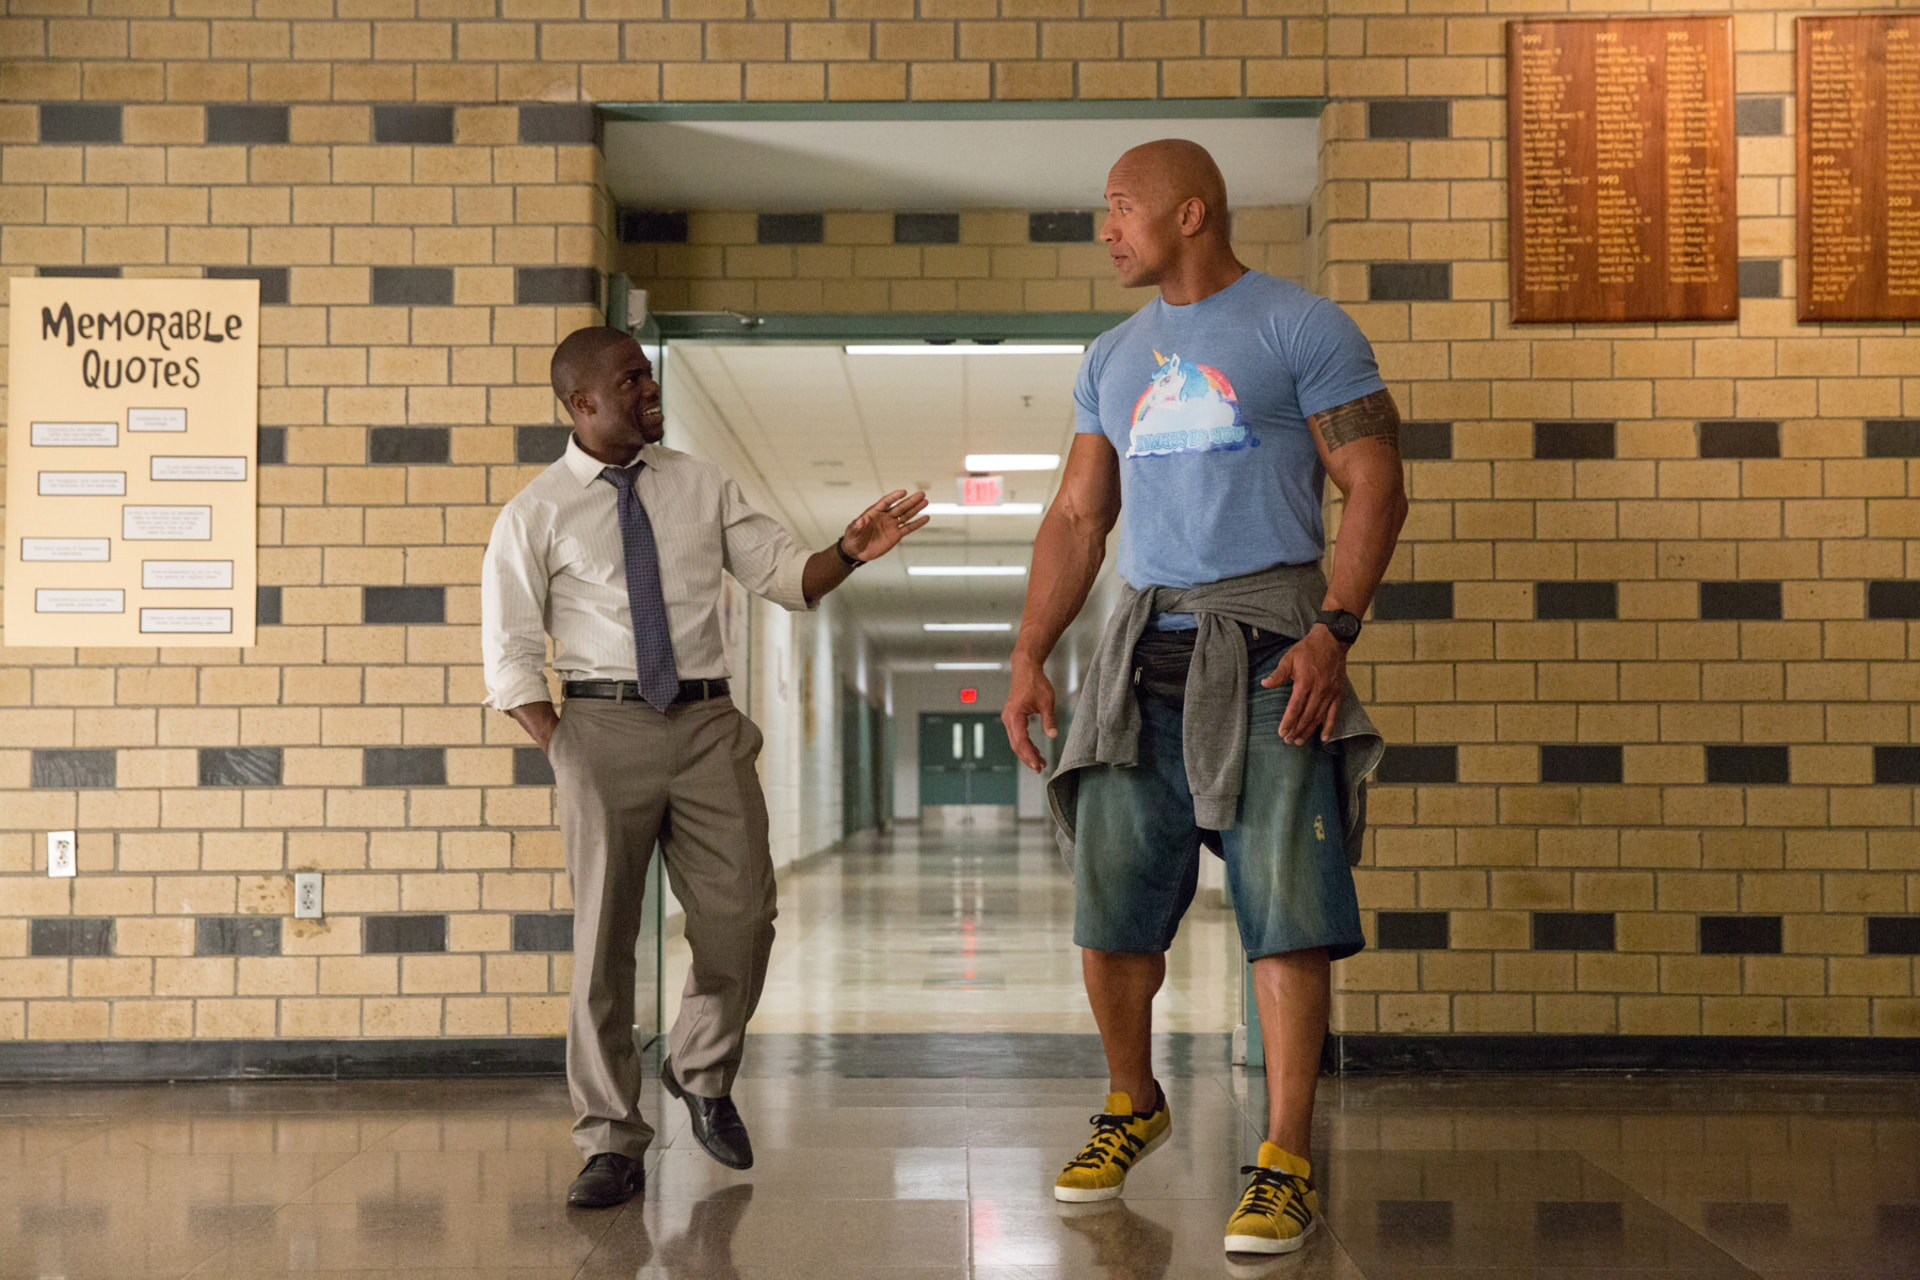 KEVIN HART as Calvin and DWAYNE JOHNSON as Bob in a high school hallway